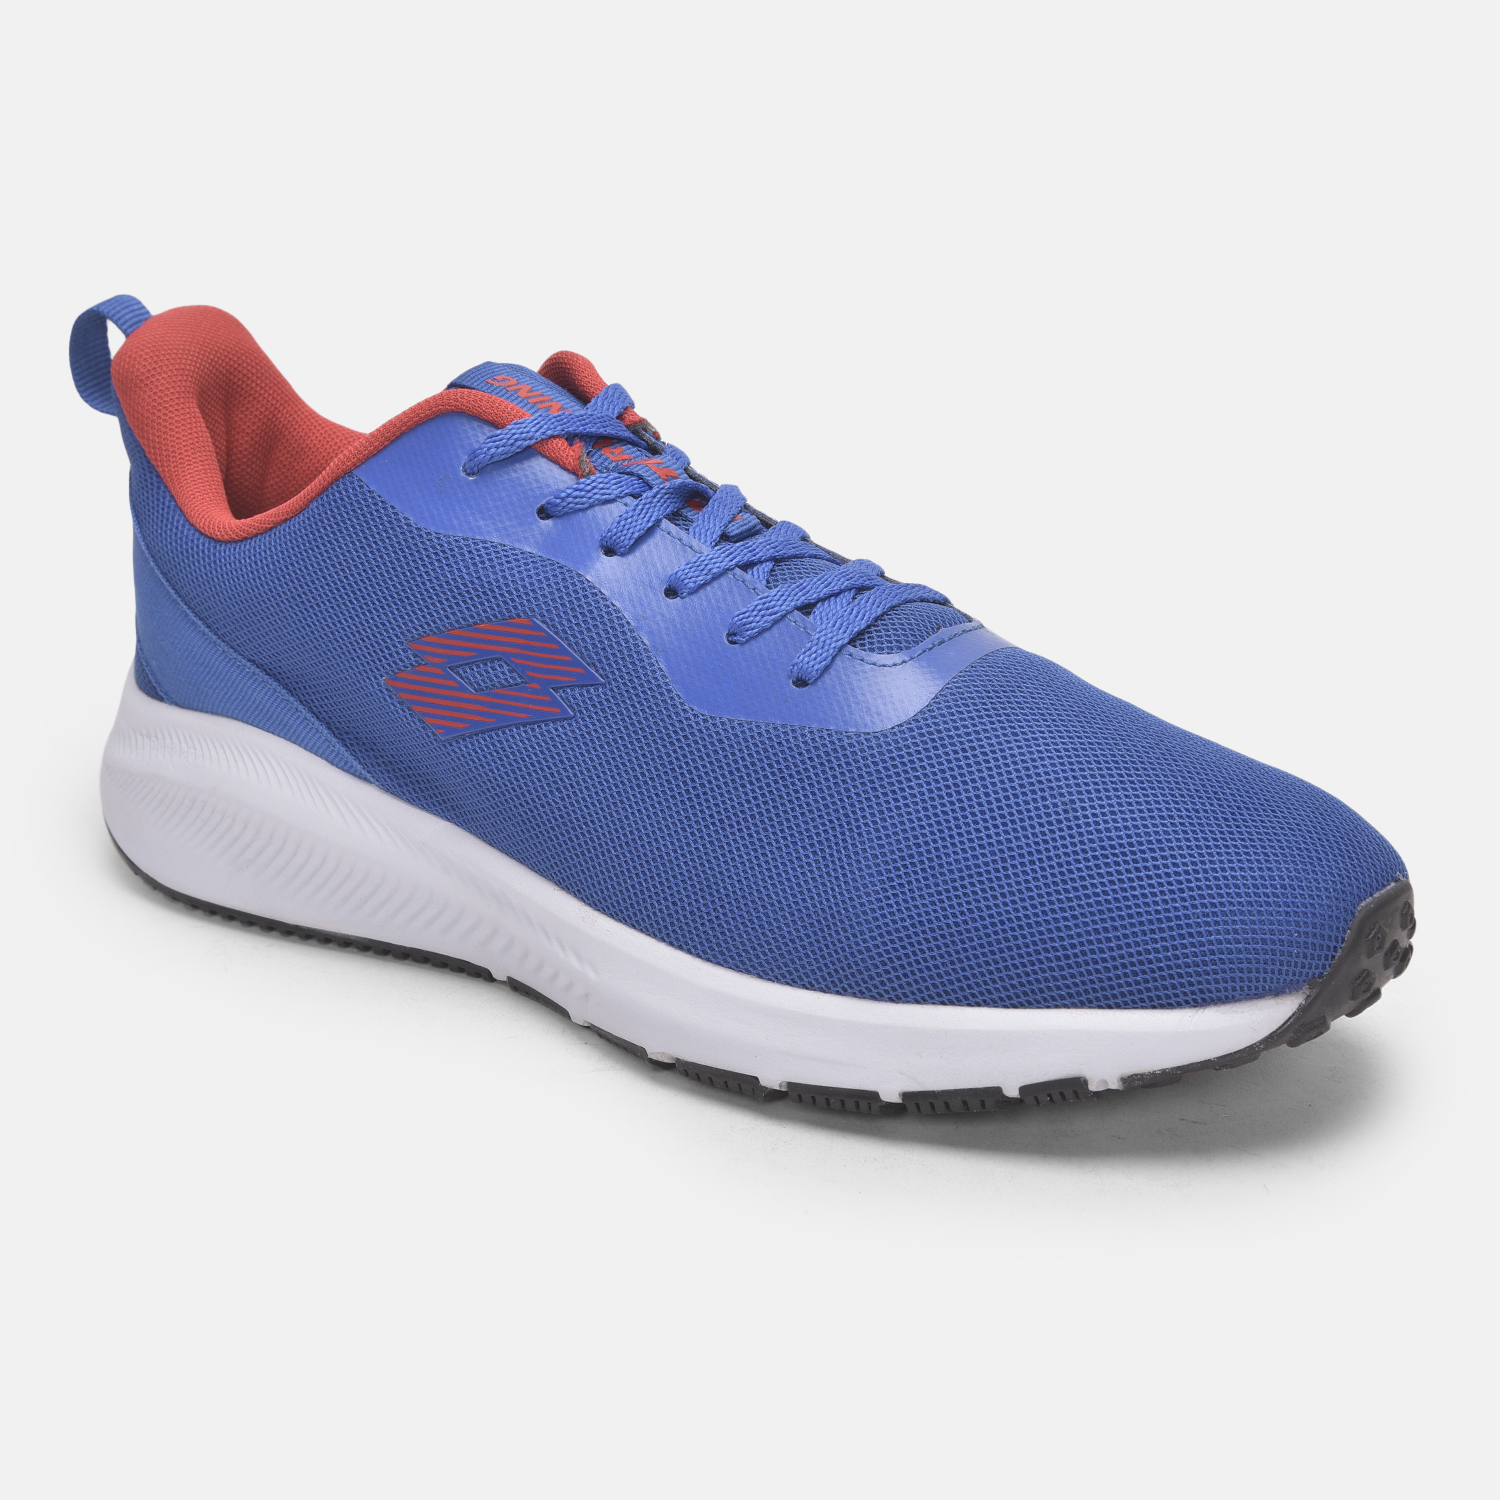 Lotto | Lotto Men's Romana Blue/Red Running Shoes